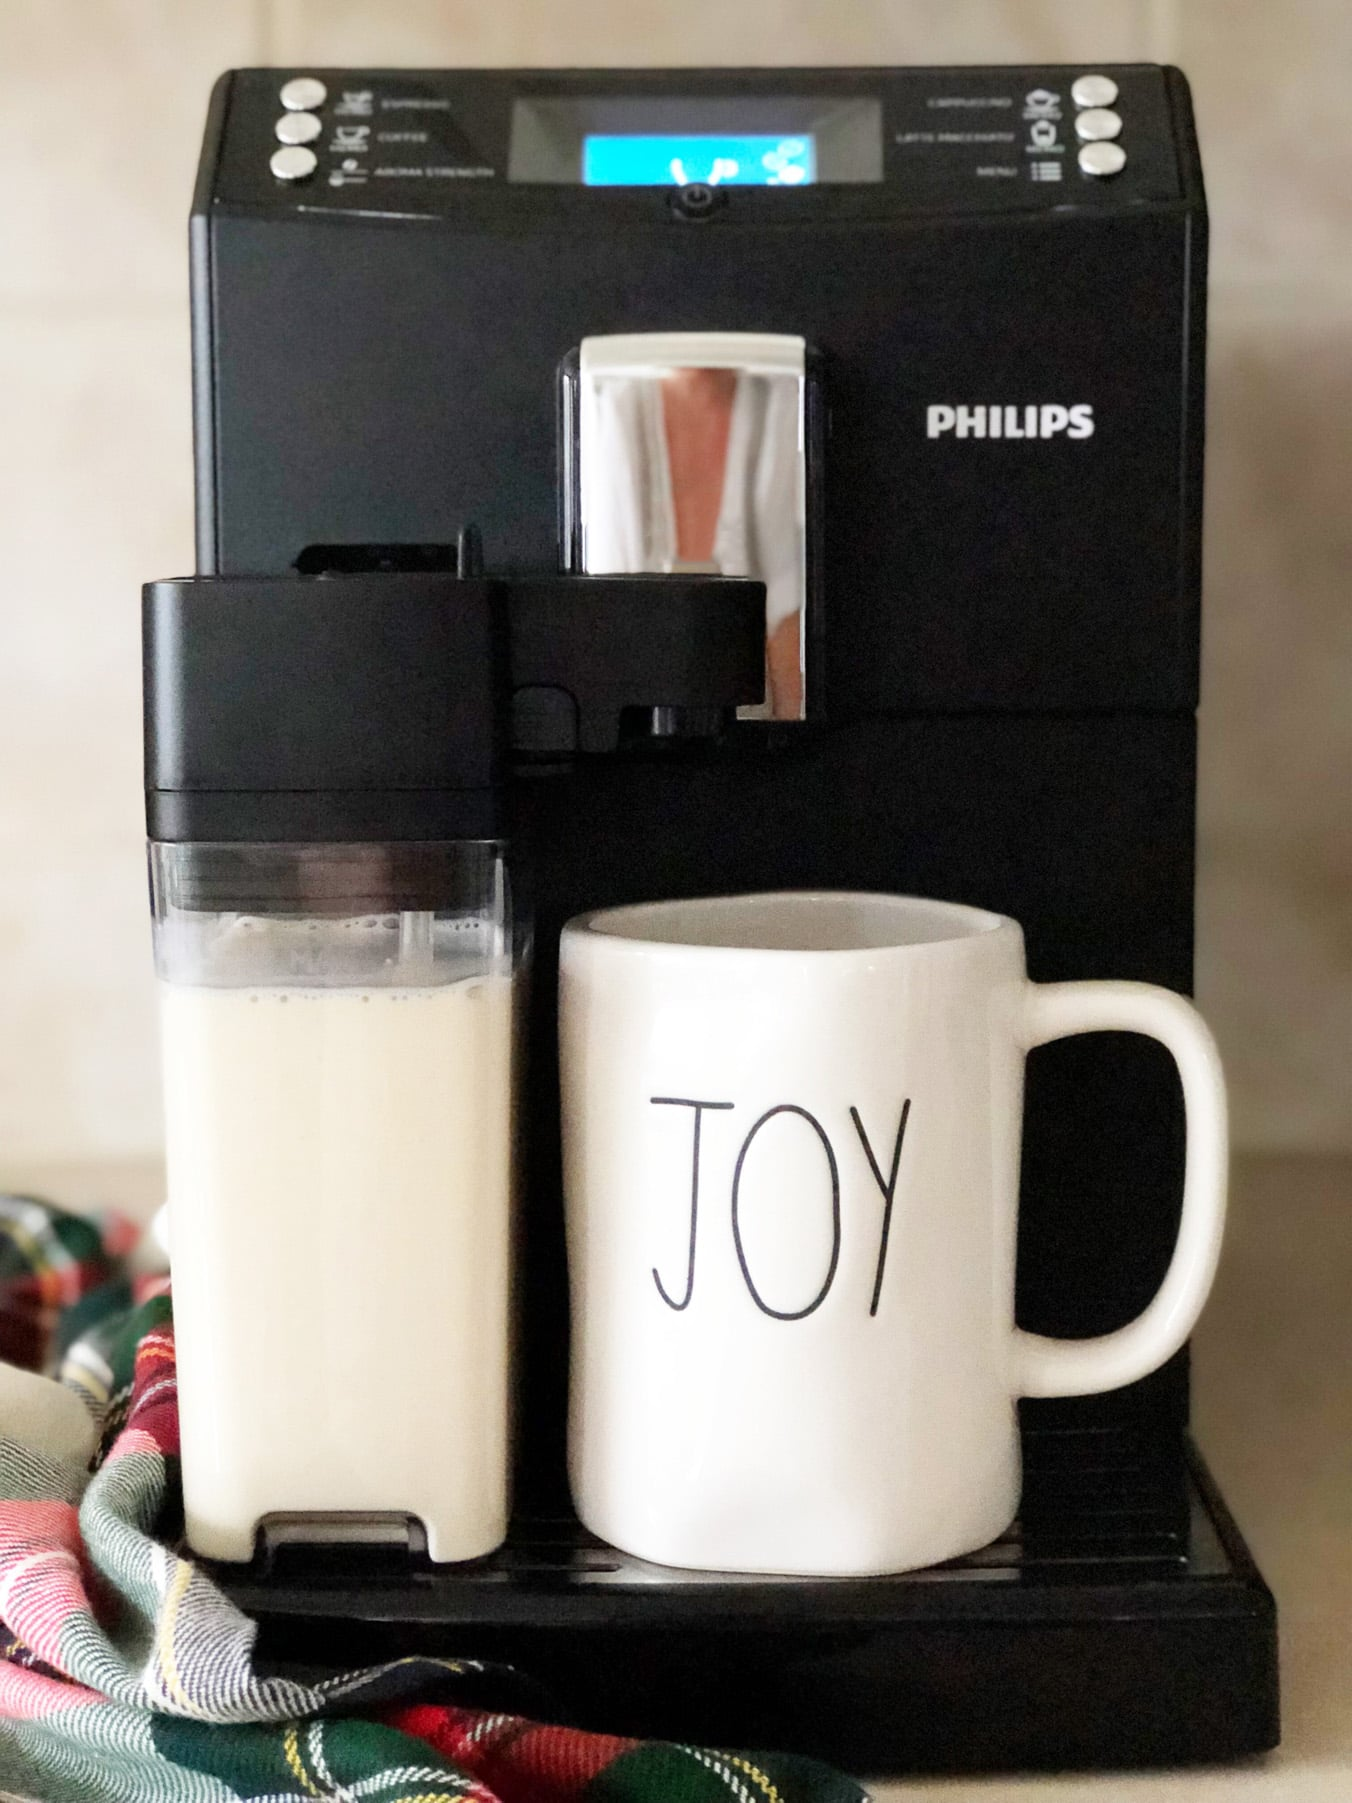 Making the most delicious Eggnog Latte with the Philips 3100 Espresso Machine